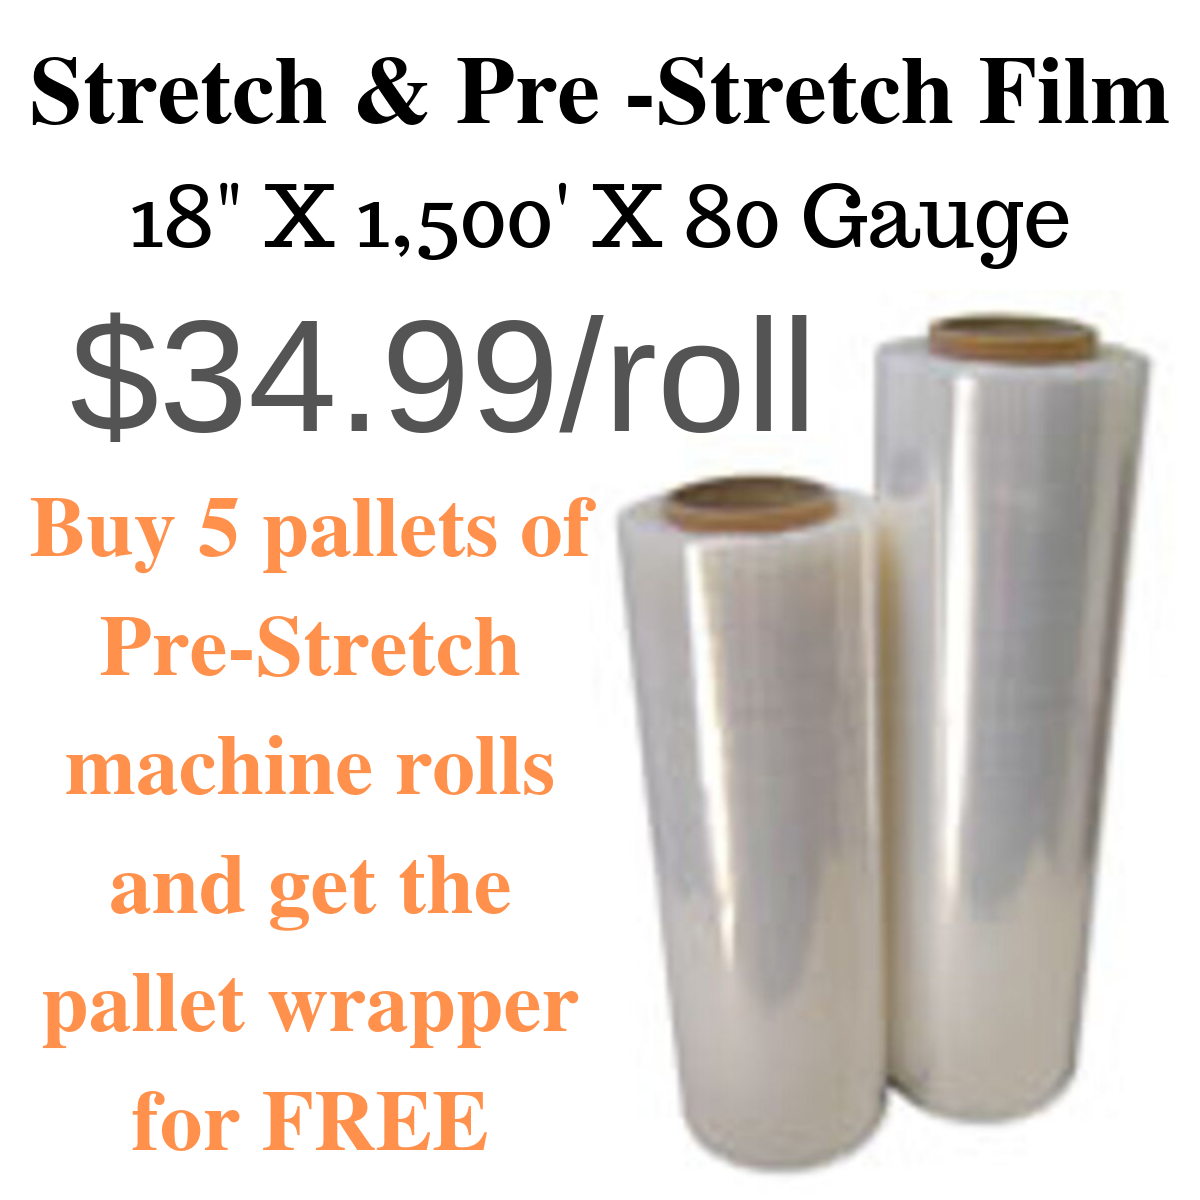 Stretch and pre-stretch wrap special $34.99 per roll 18 inch by 1500 feet, 80 gauge